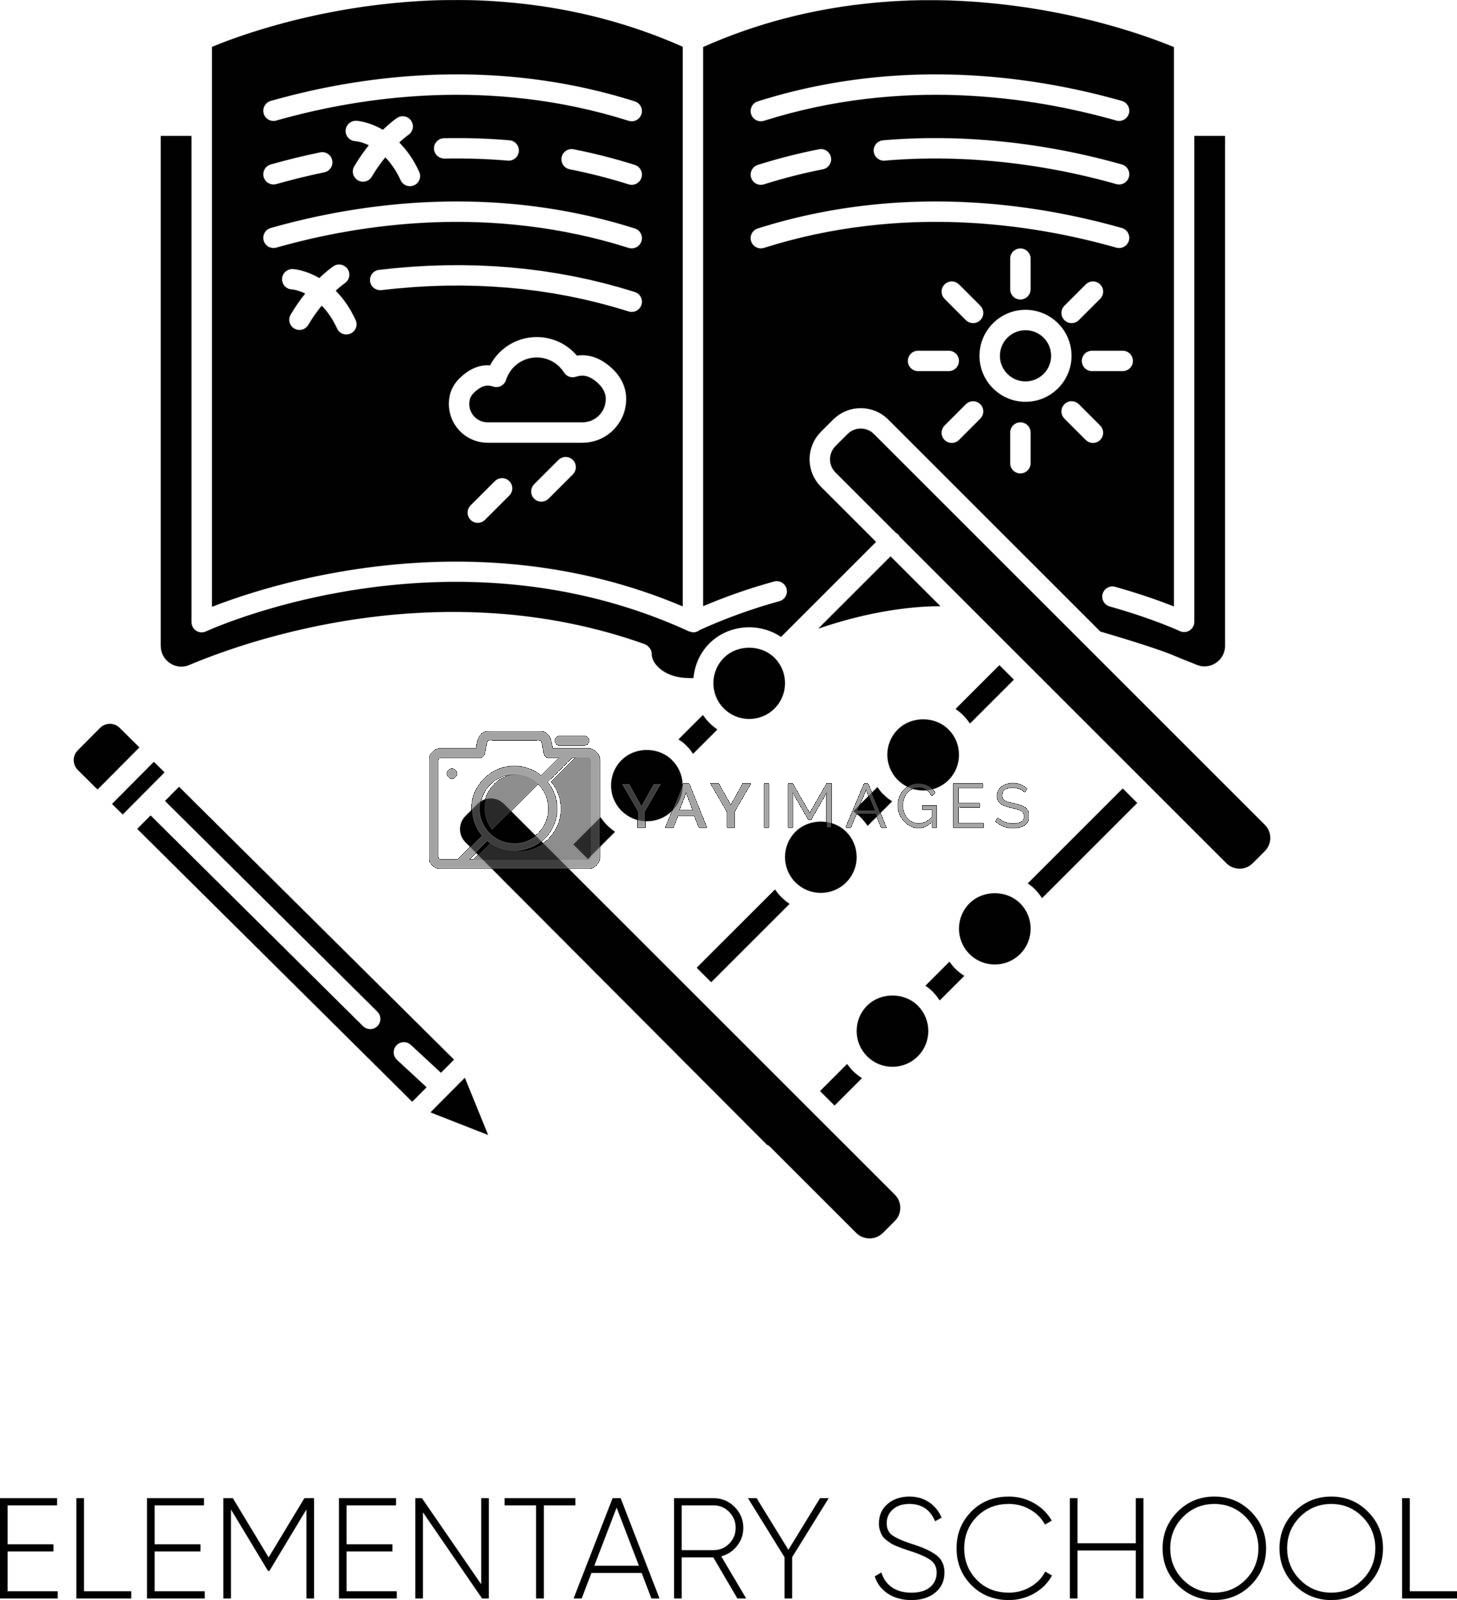 Elementary school black glyph icon. Primary education, basic knowledge silhouette symbol on white space. Junior year student equipment. Copybook, pencil and abacus vector isolated illustration